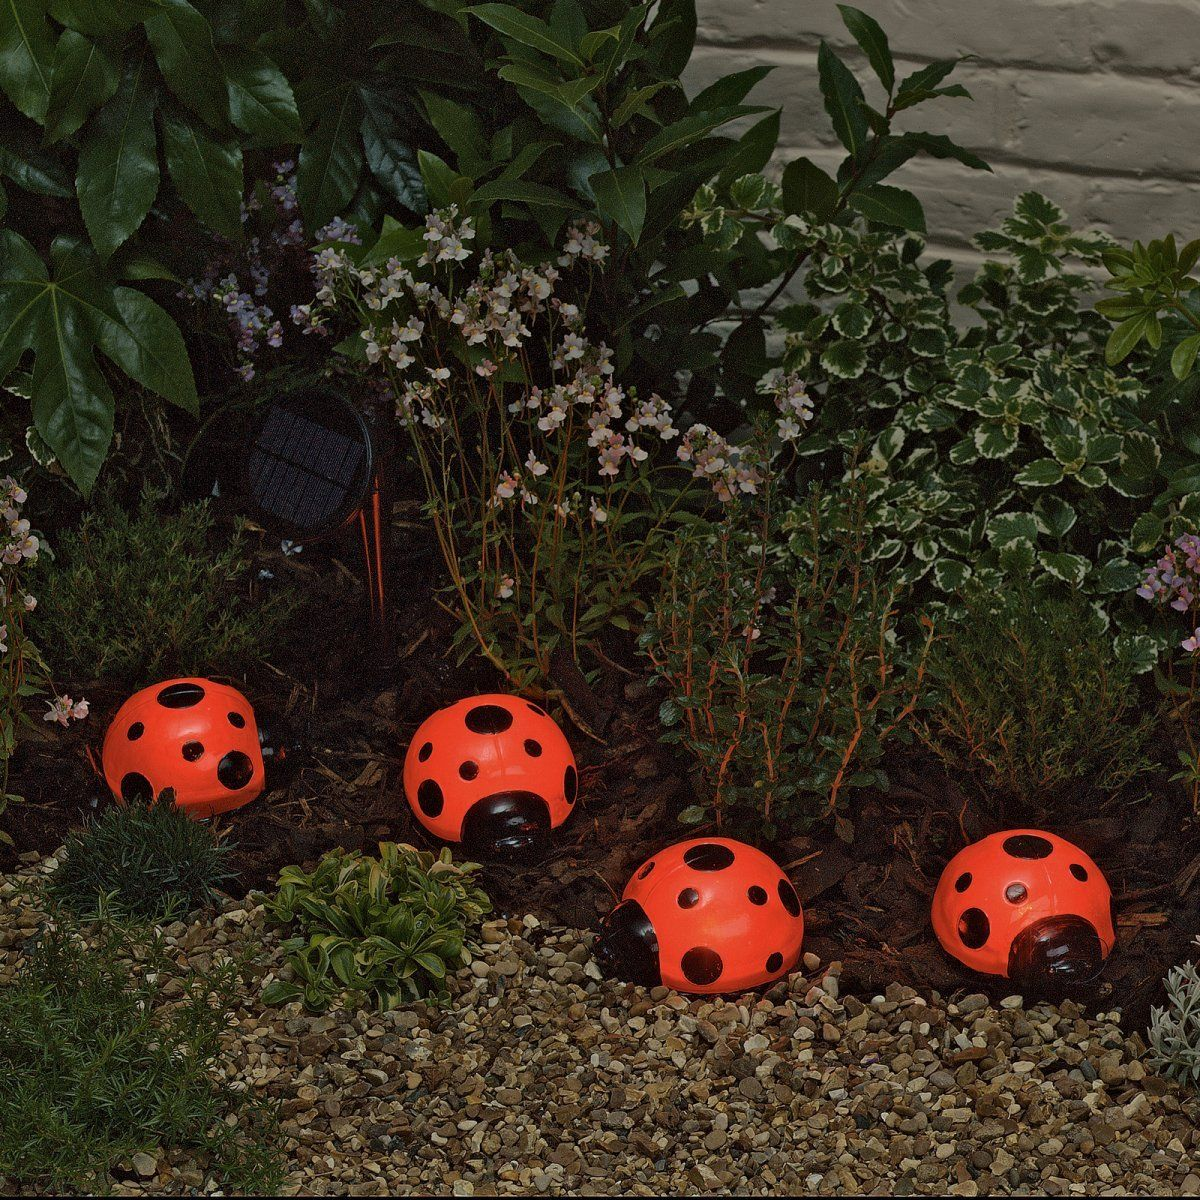 Superb Smart Solar Ladybug Solar Lights   Set Of 4   Ladybugs Are Ideal For  Controlling Aphids In Your Garden, Bringing Luck To Your Future, And Now  Lighting Up ...